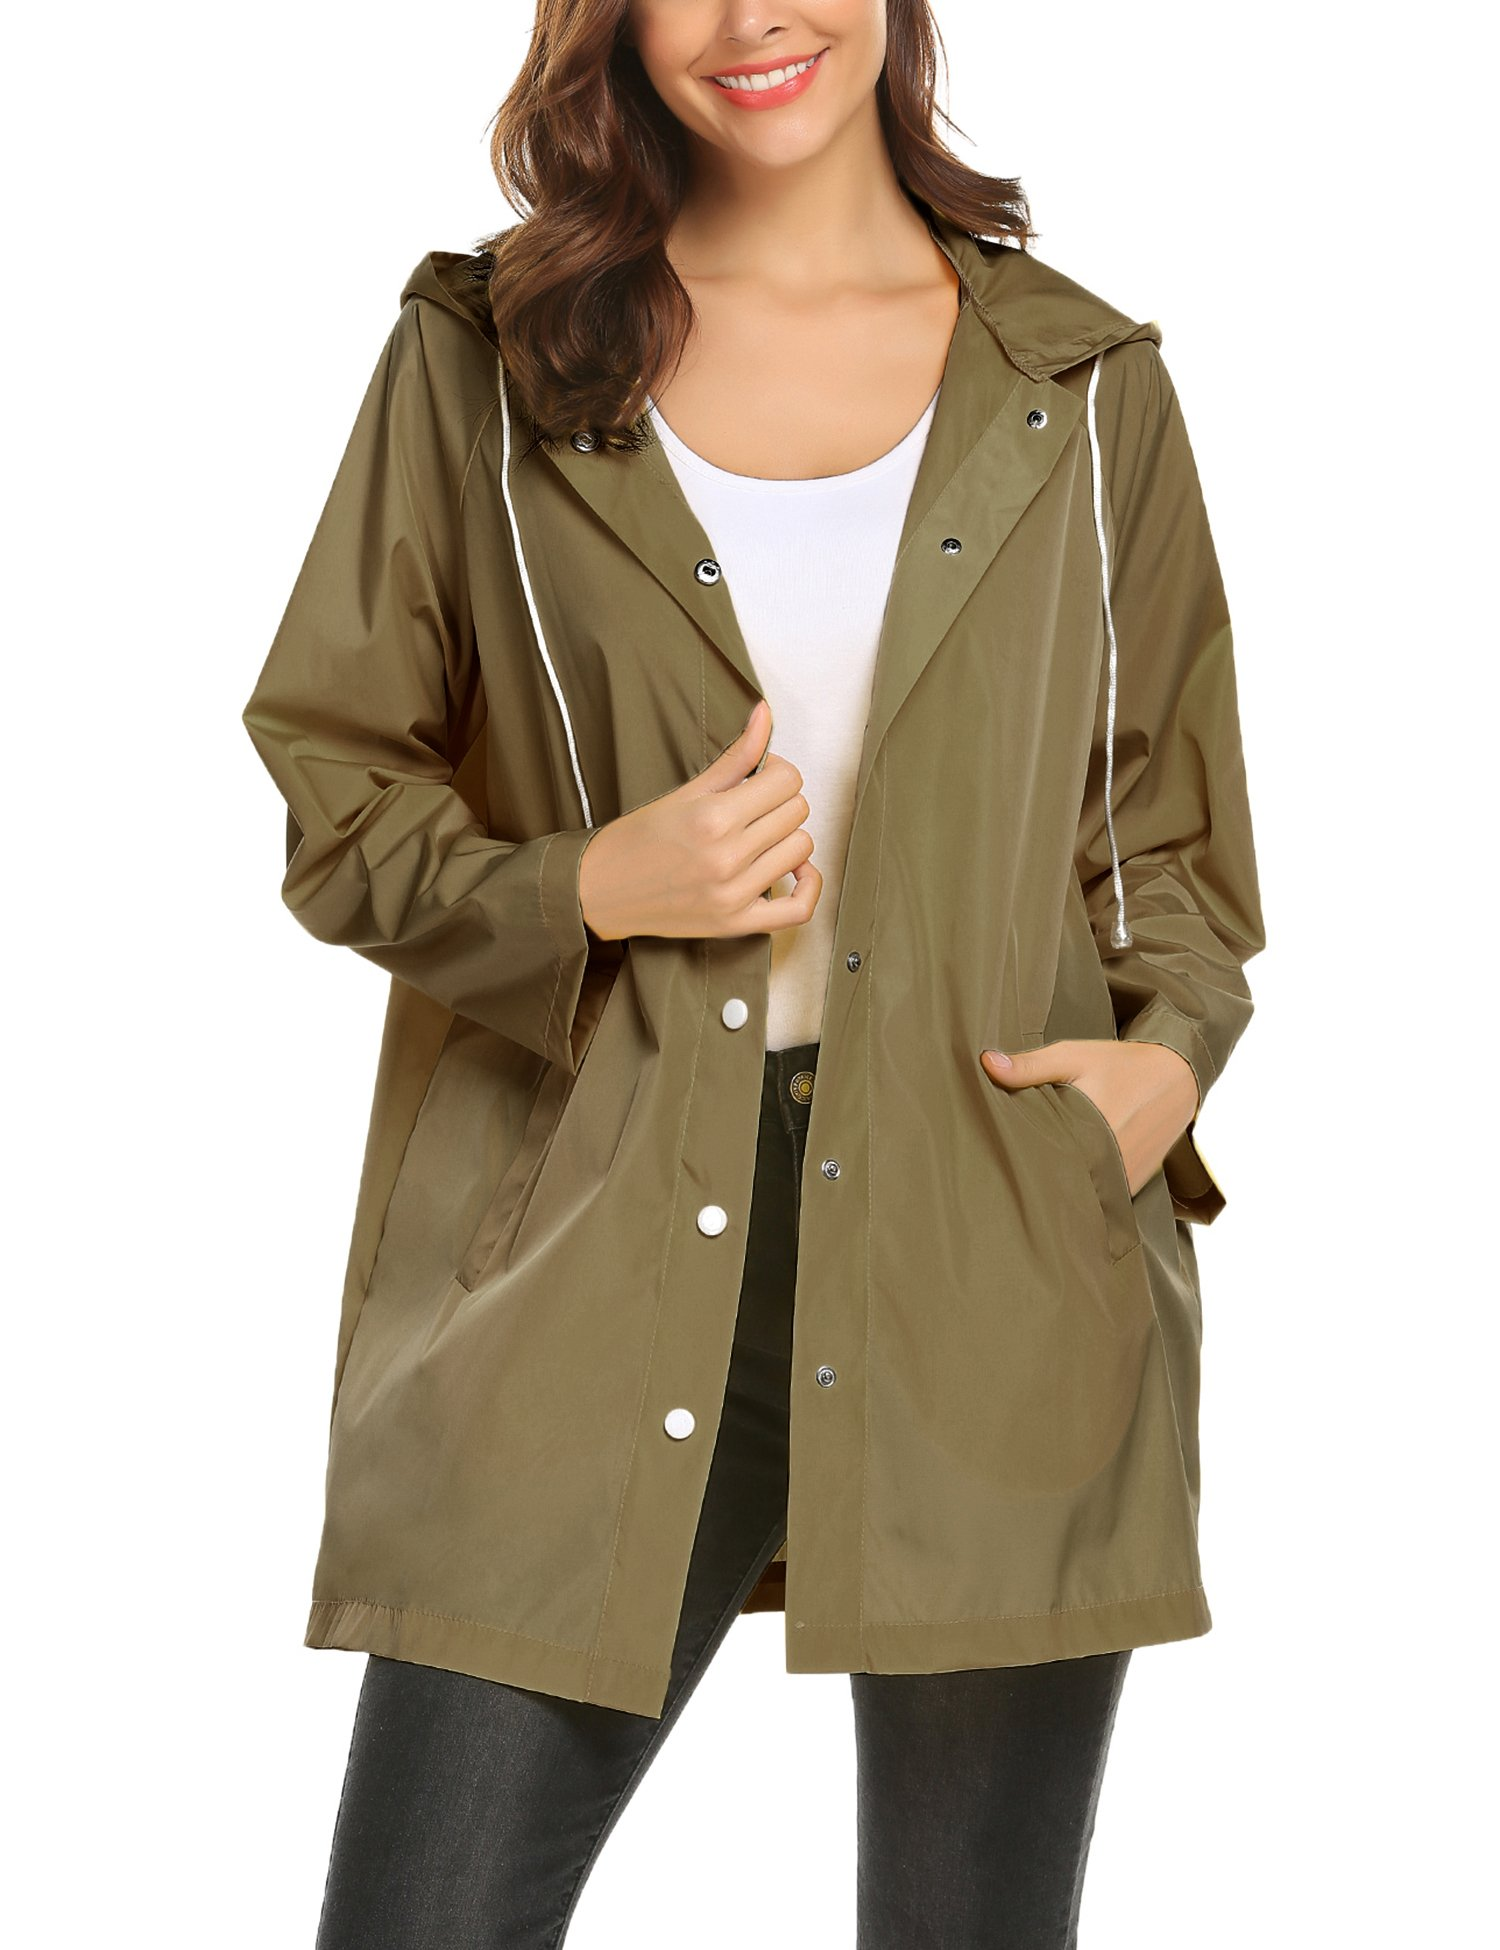 ZHENWEI Rain Jacket Women Light Cool Summer,Long Trench Raincoat Outfit (Army Green,XXL)